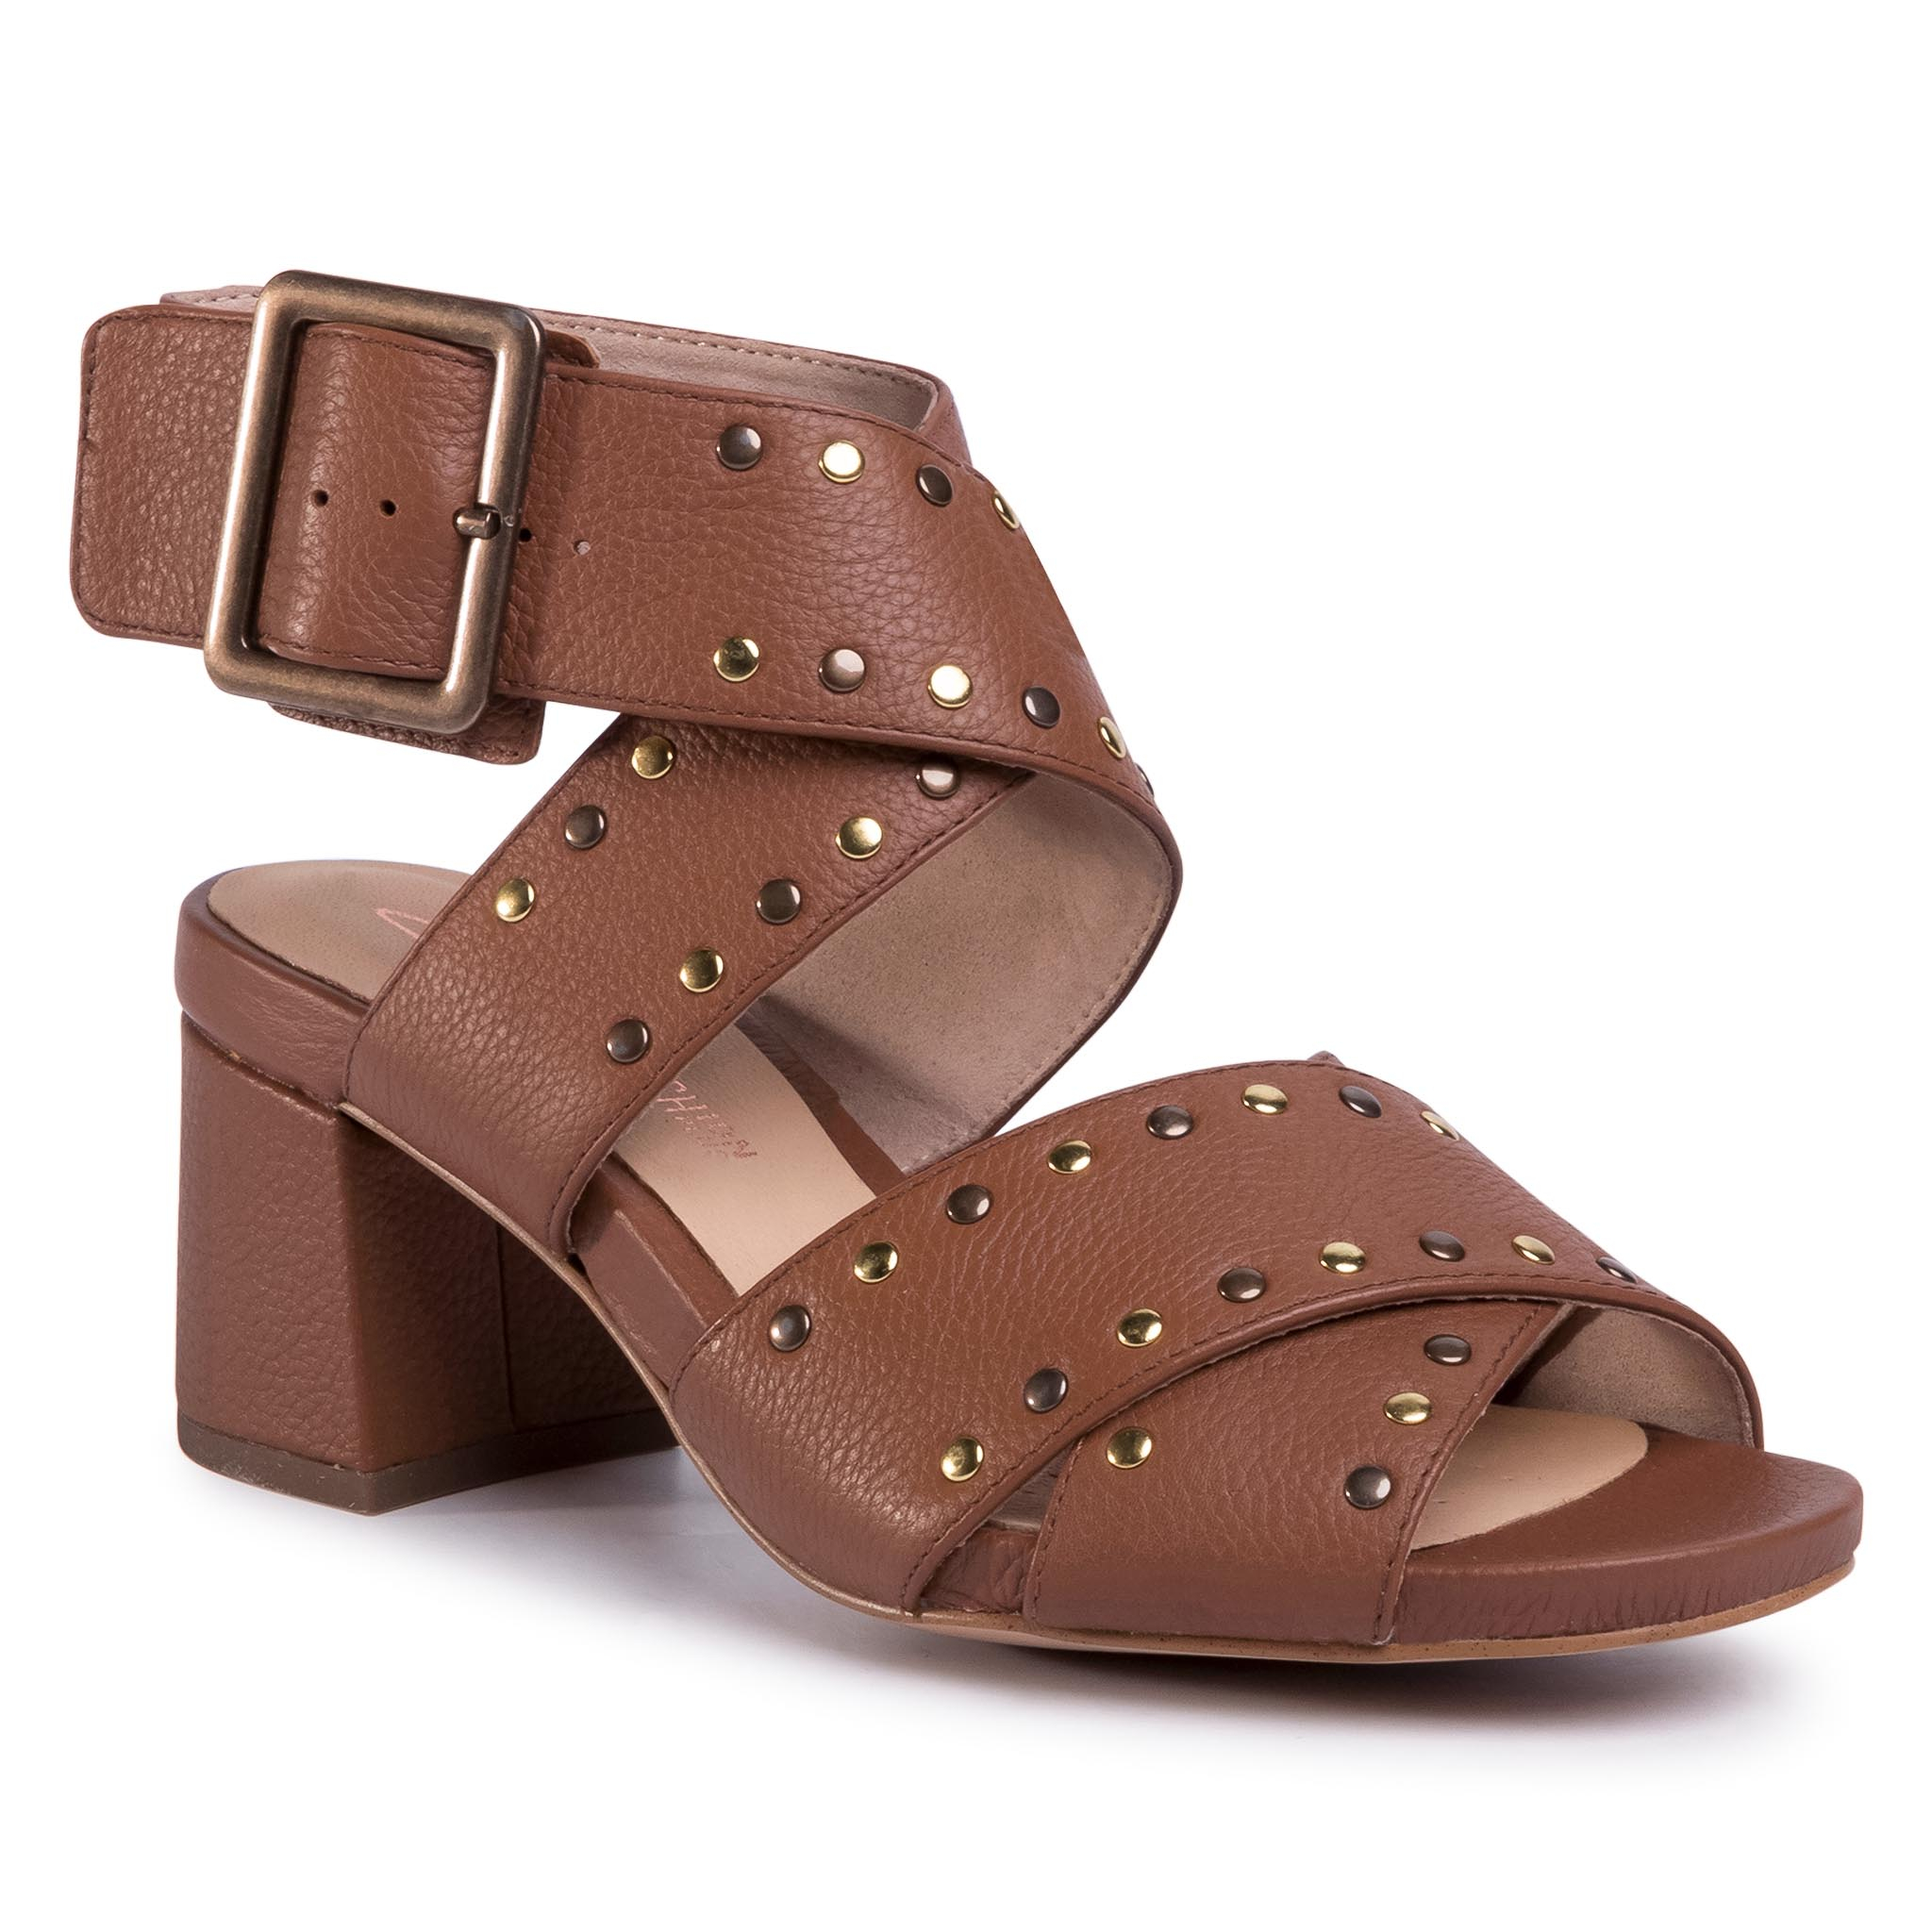 Sandale CLARKS - Sheer55 Buckle 261492674 Tan Leather